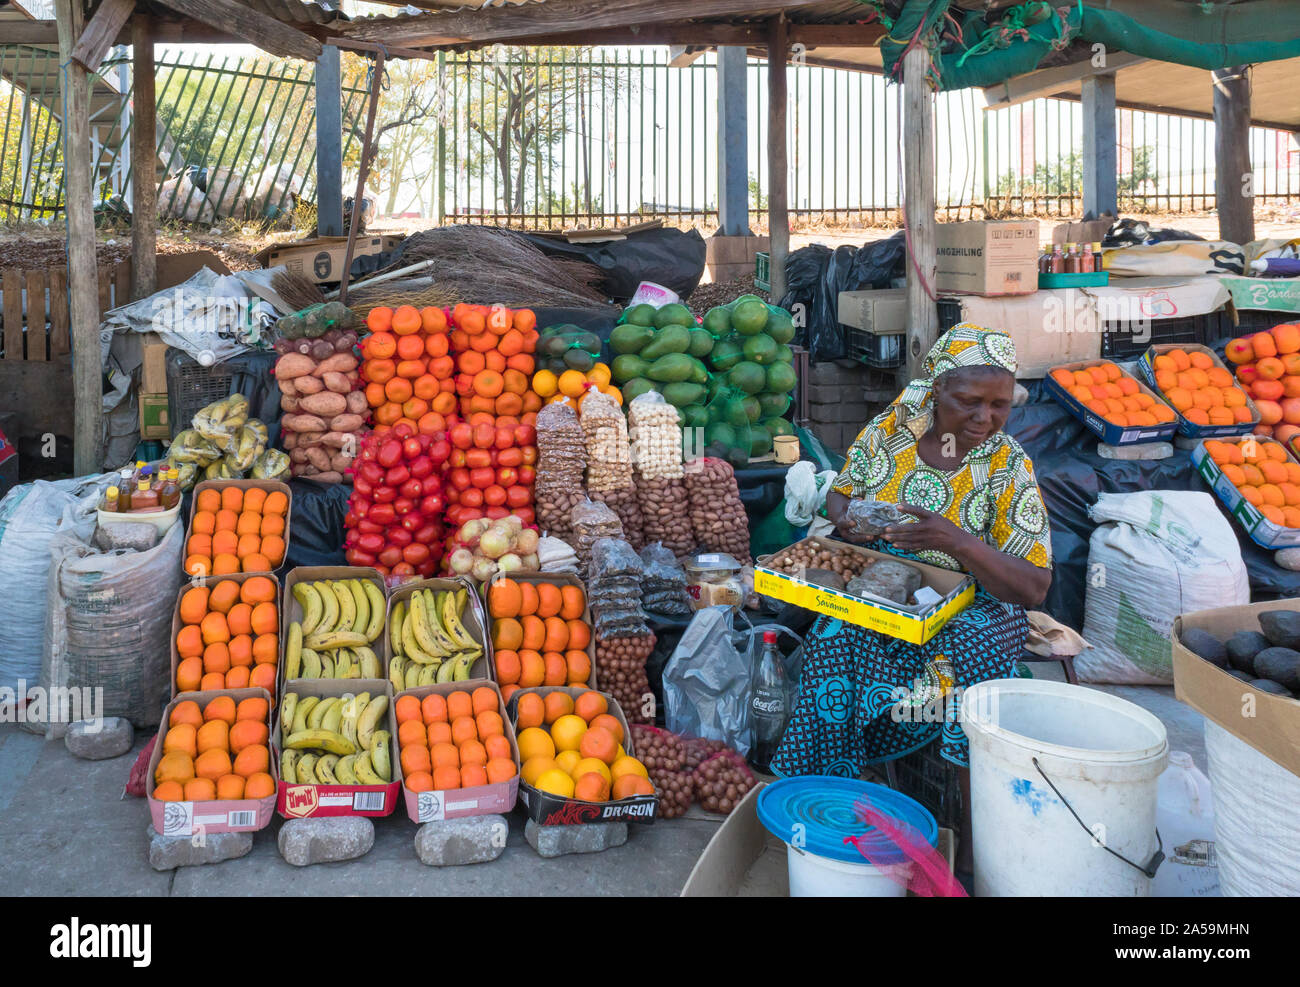 woman selling fruits, trader, vendor at a street market stall in Hazyview, Mpumalanga, South Africa Stock Photo